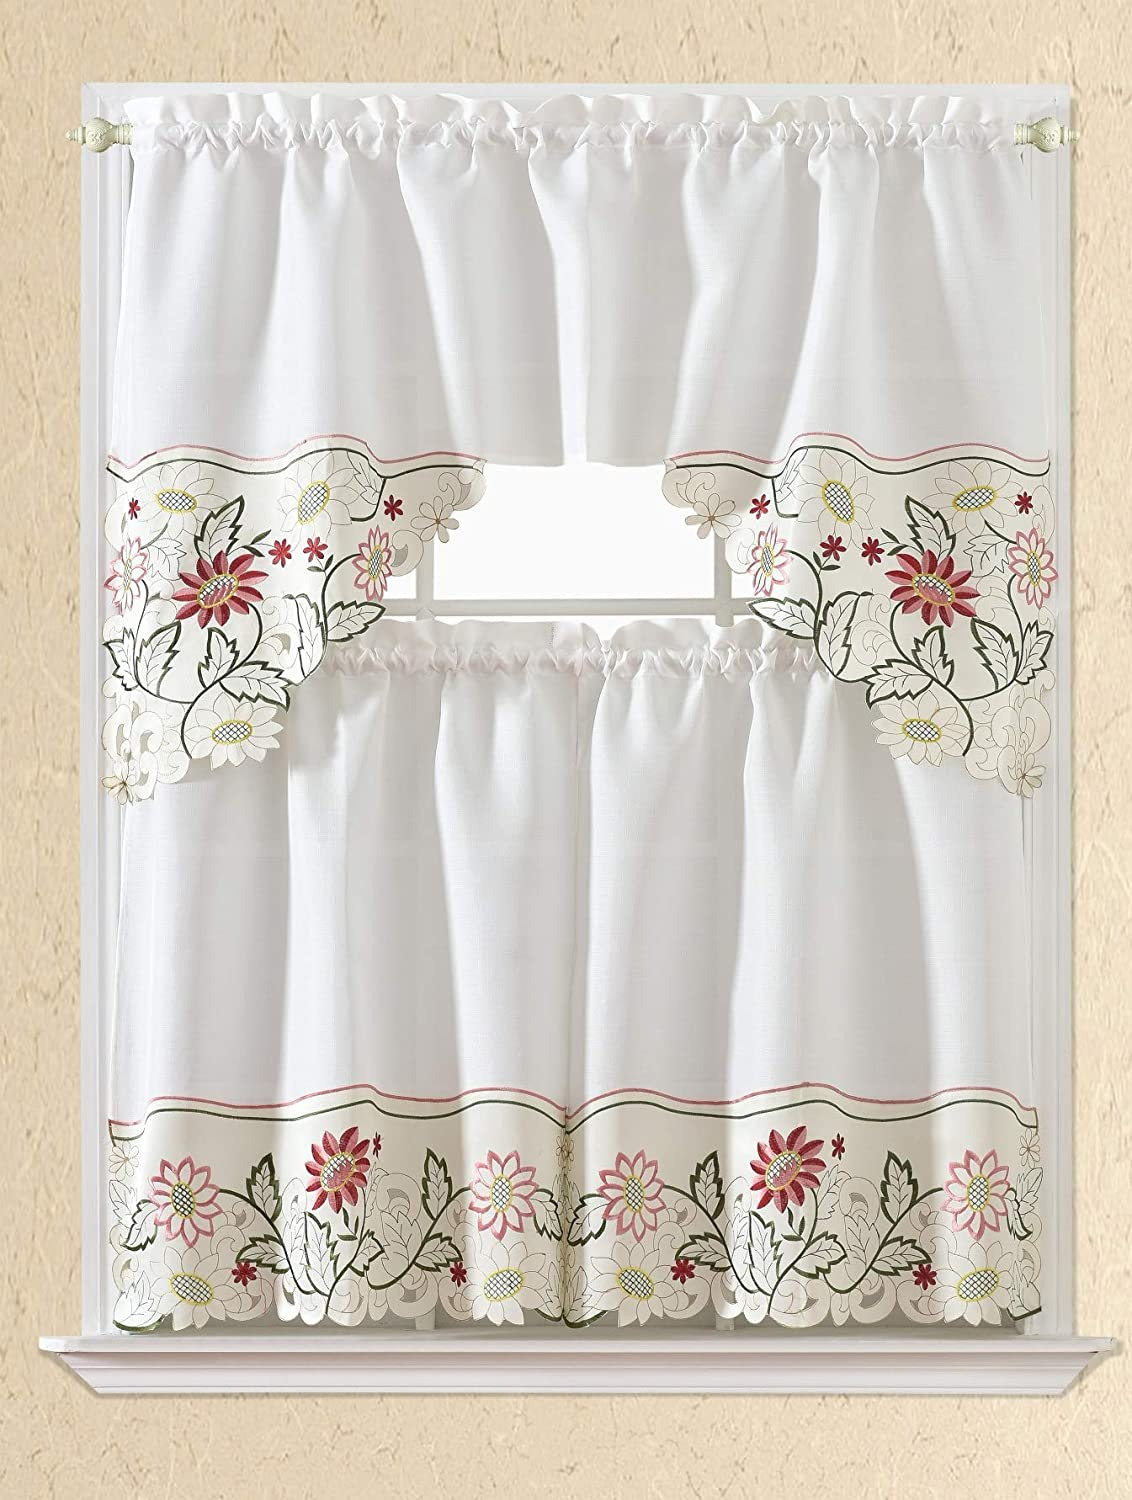 3PC Kitchen Window Curtain Set Embroidery Design,Set Includes 2 Tiers and 1 Valance Available in Multiple Designs